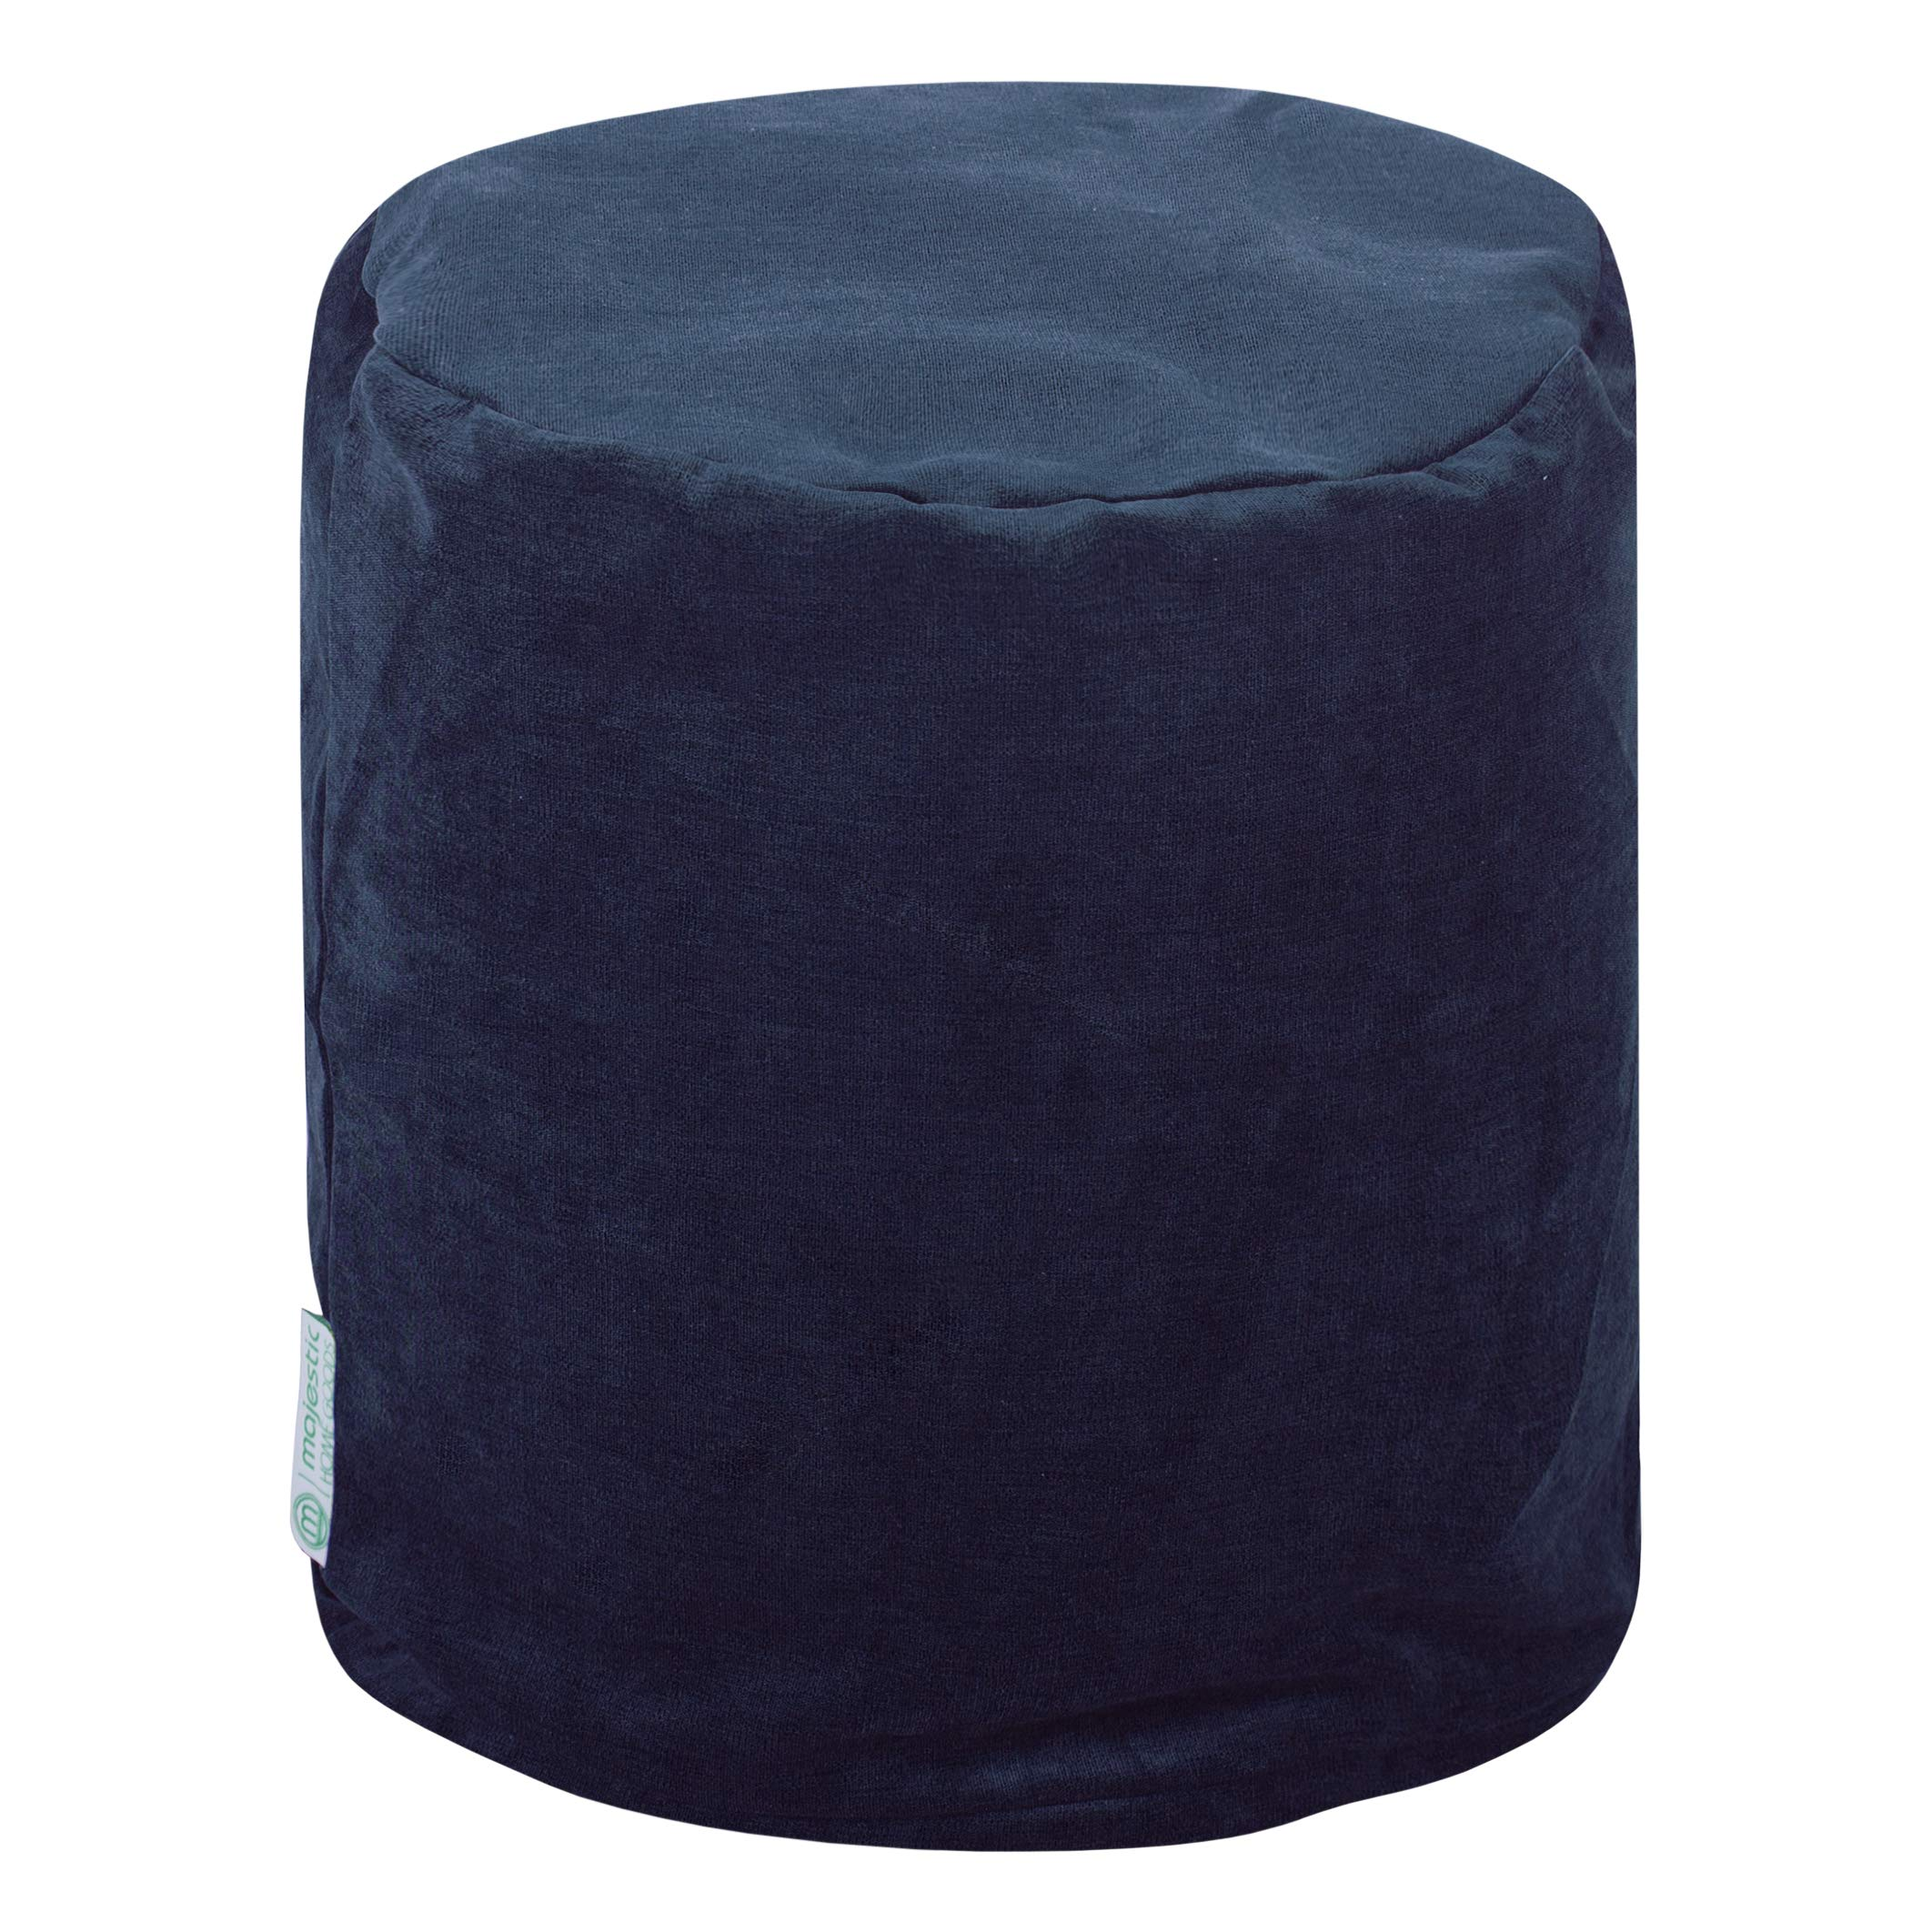 Majestic Home Goods Navy Villa Indoor Bean Bag Ottoman Pouf 16'' L x 16'' W x 17'' H